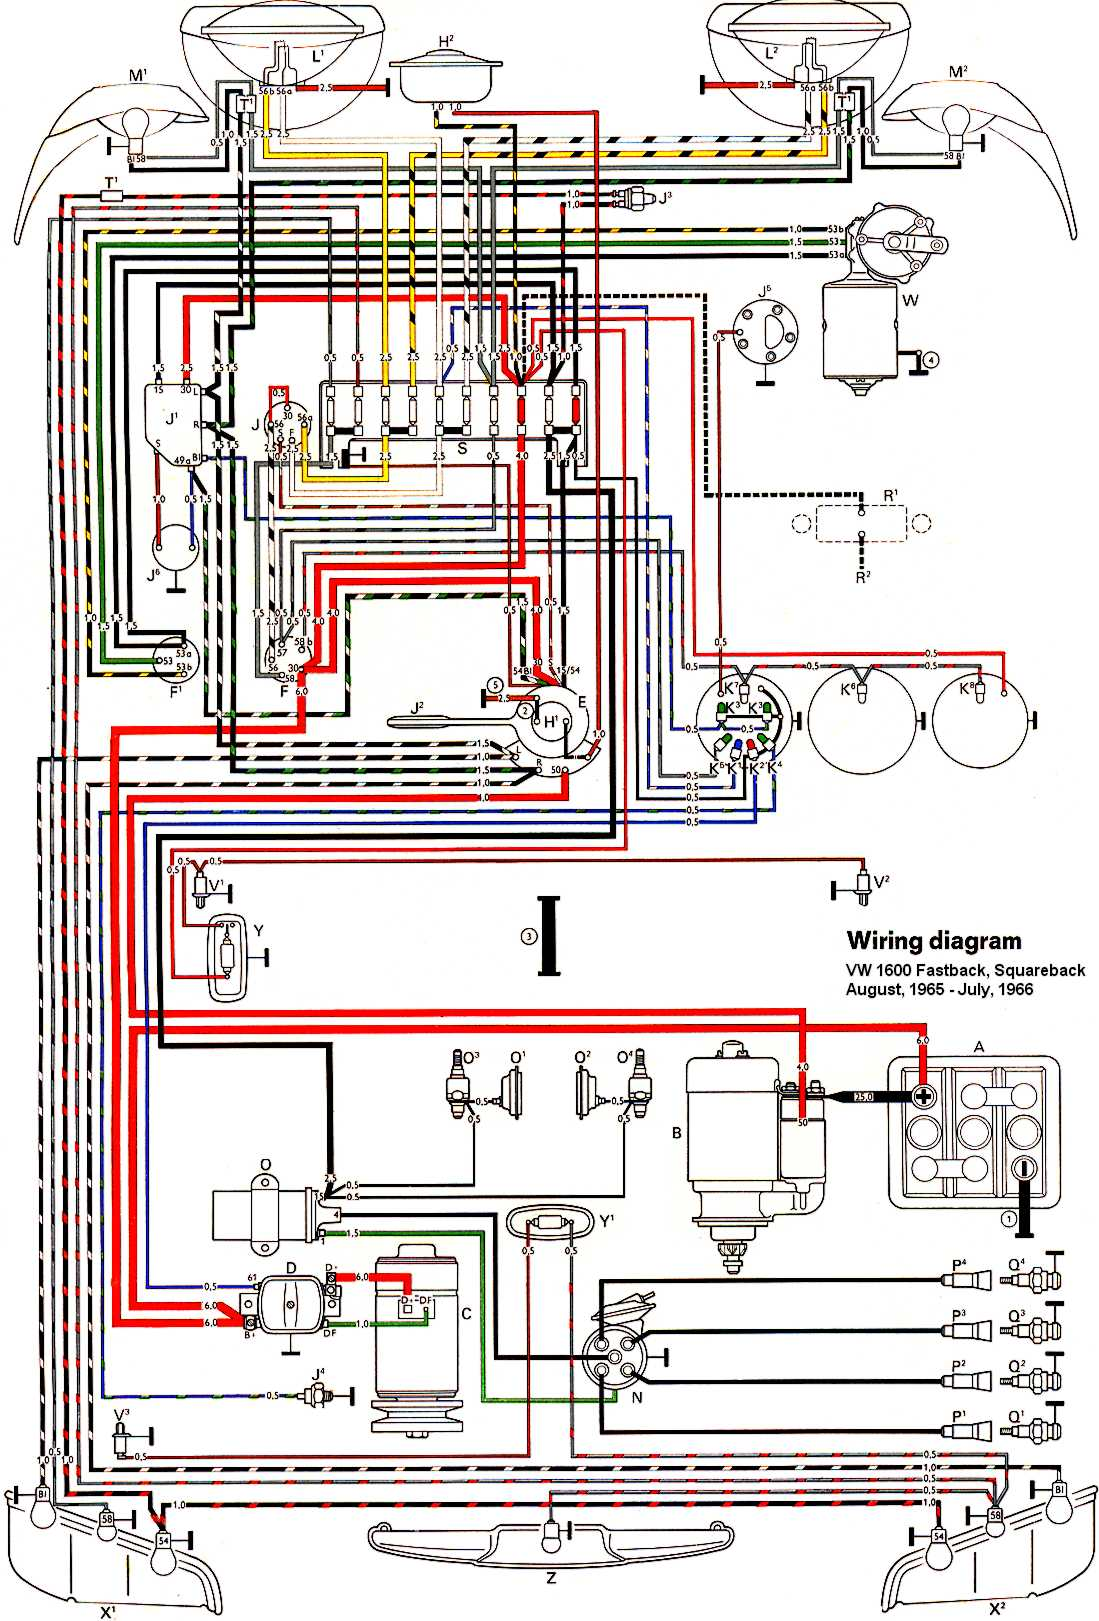 type3_1600_66 vw thing wiring diagram 1974 beetle heater diagram \u2022 wiring 1971 vw bus wiring diagram at bakdesigns.co